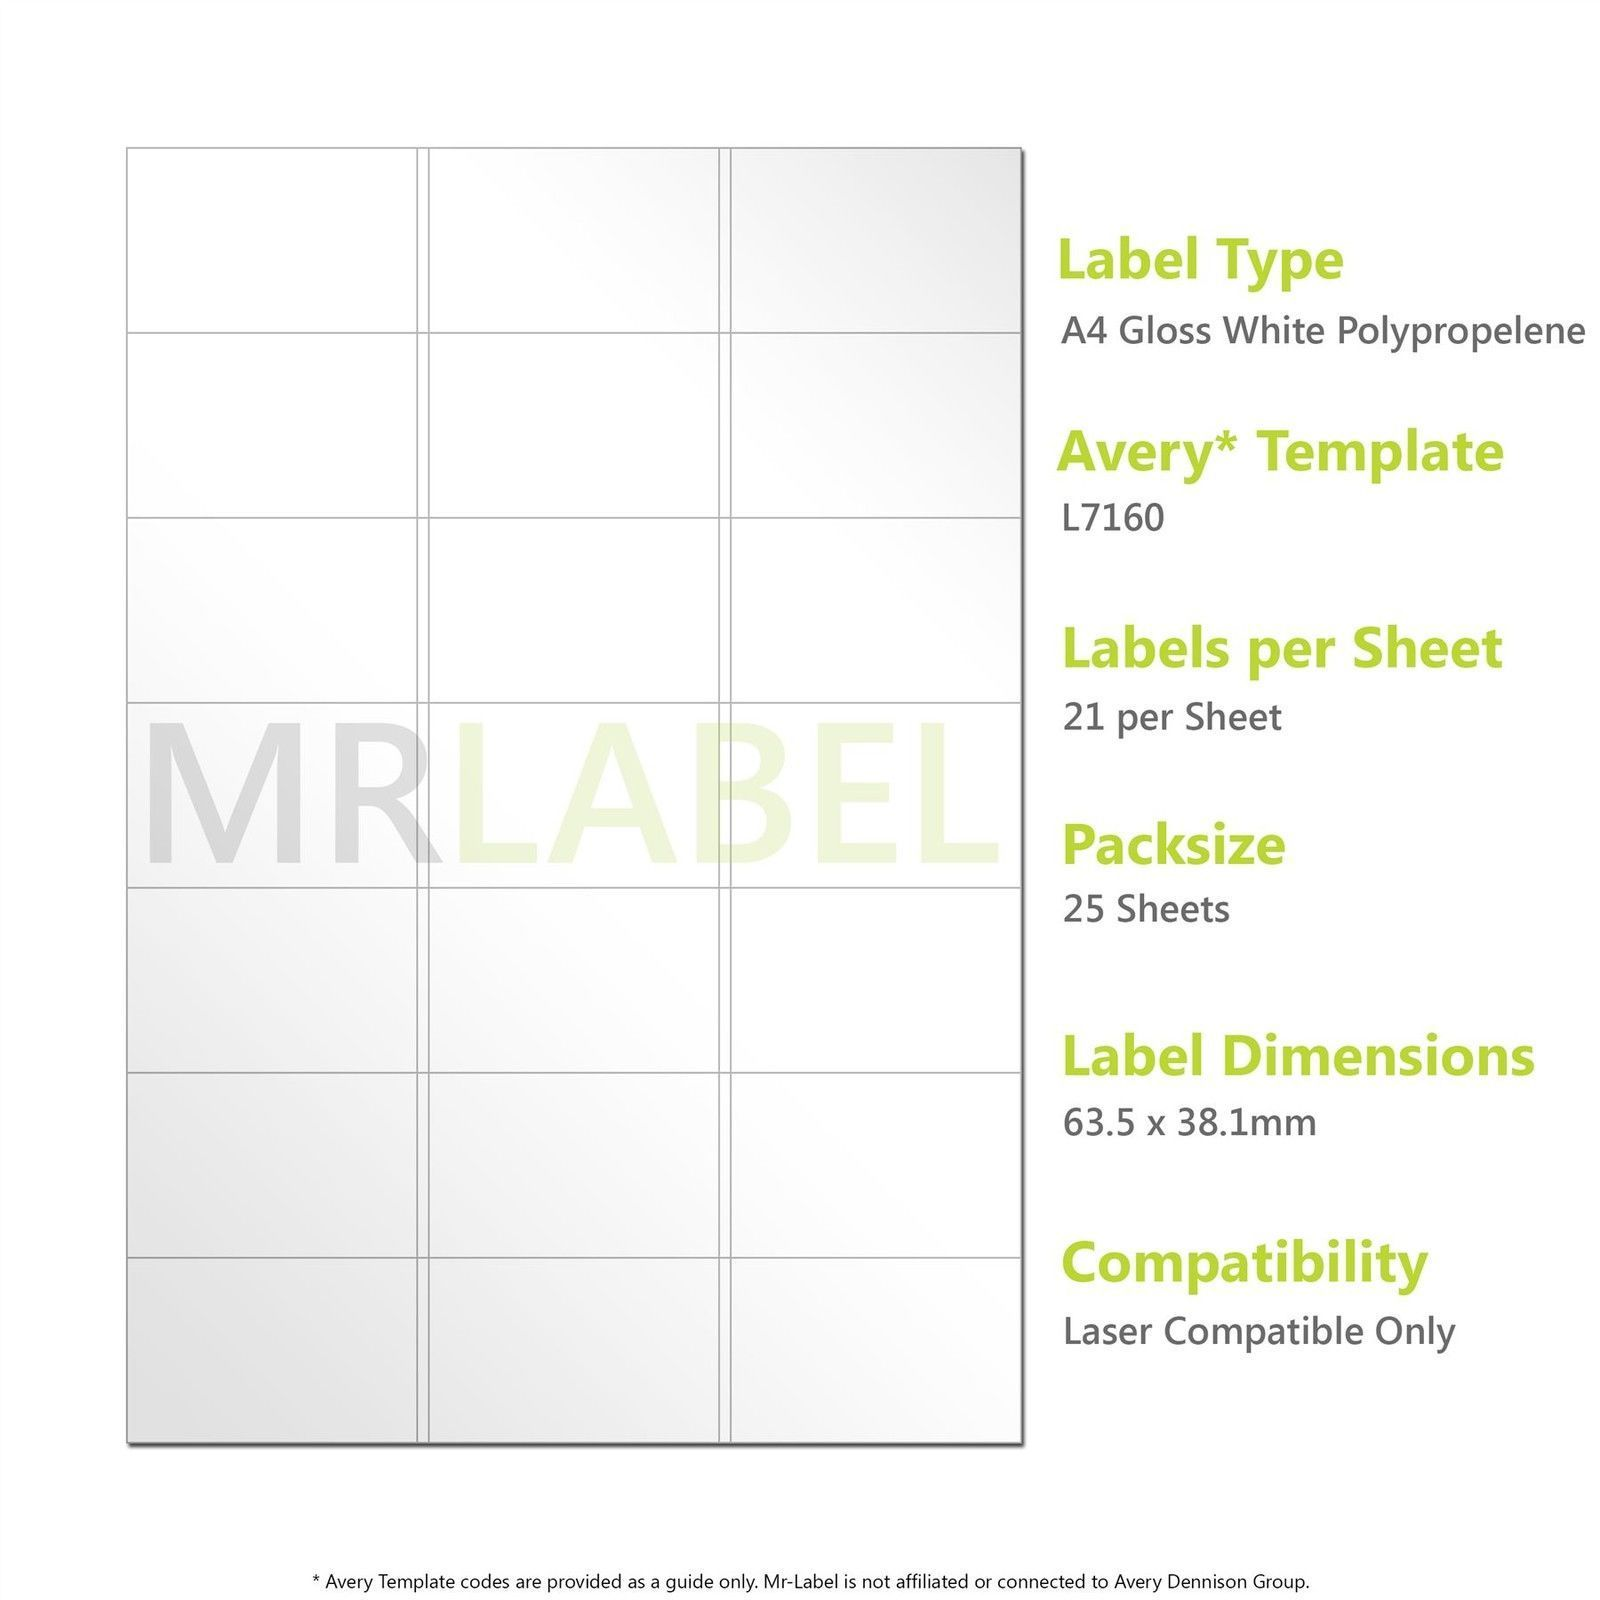 A4 Gloss White Pp Labels 21 Per Sheet 25 Sheets Laser Compatible L7160 With Label Template 21 Per Sheet Best Tem Label Templates Templates Sheet Labels